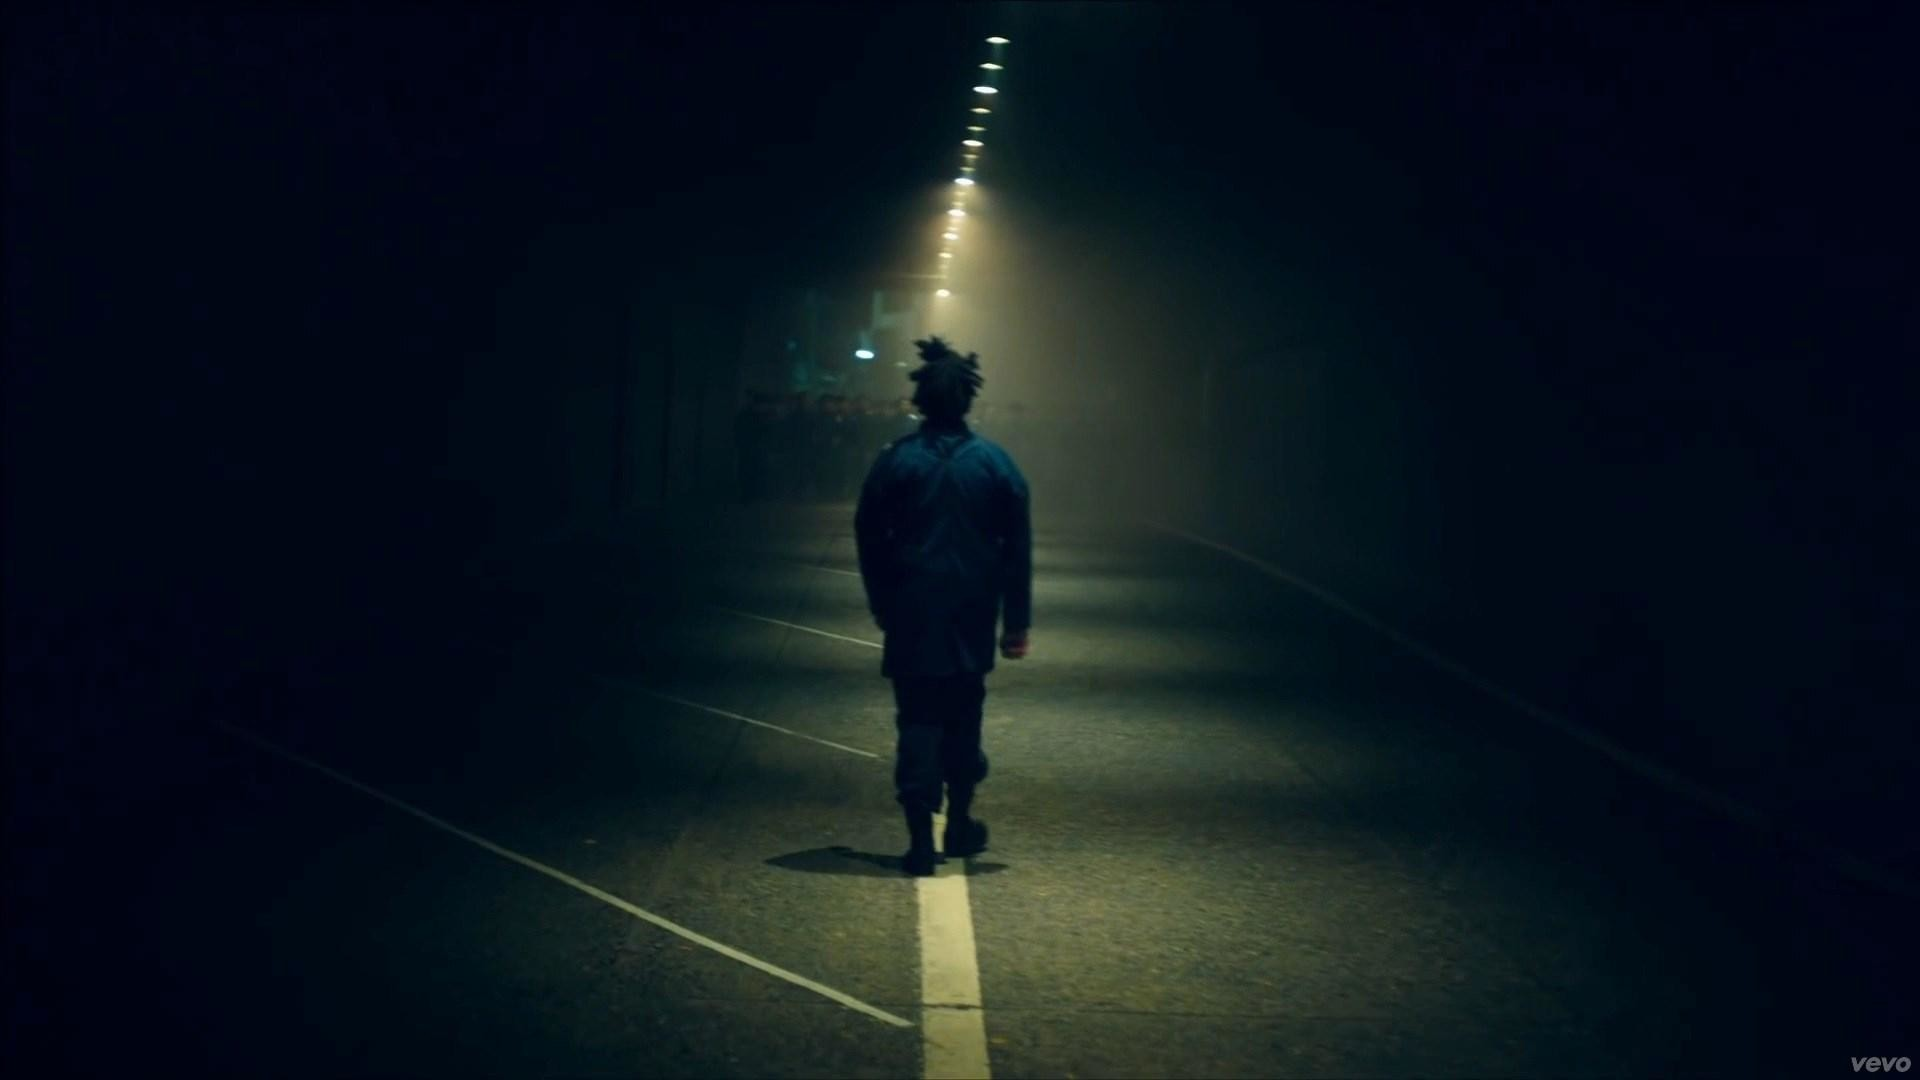 the-weeknd-photography-free-1920-x-1080-kB-